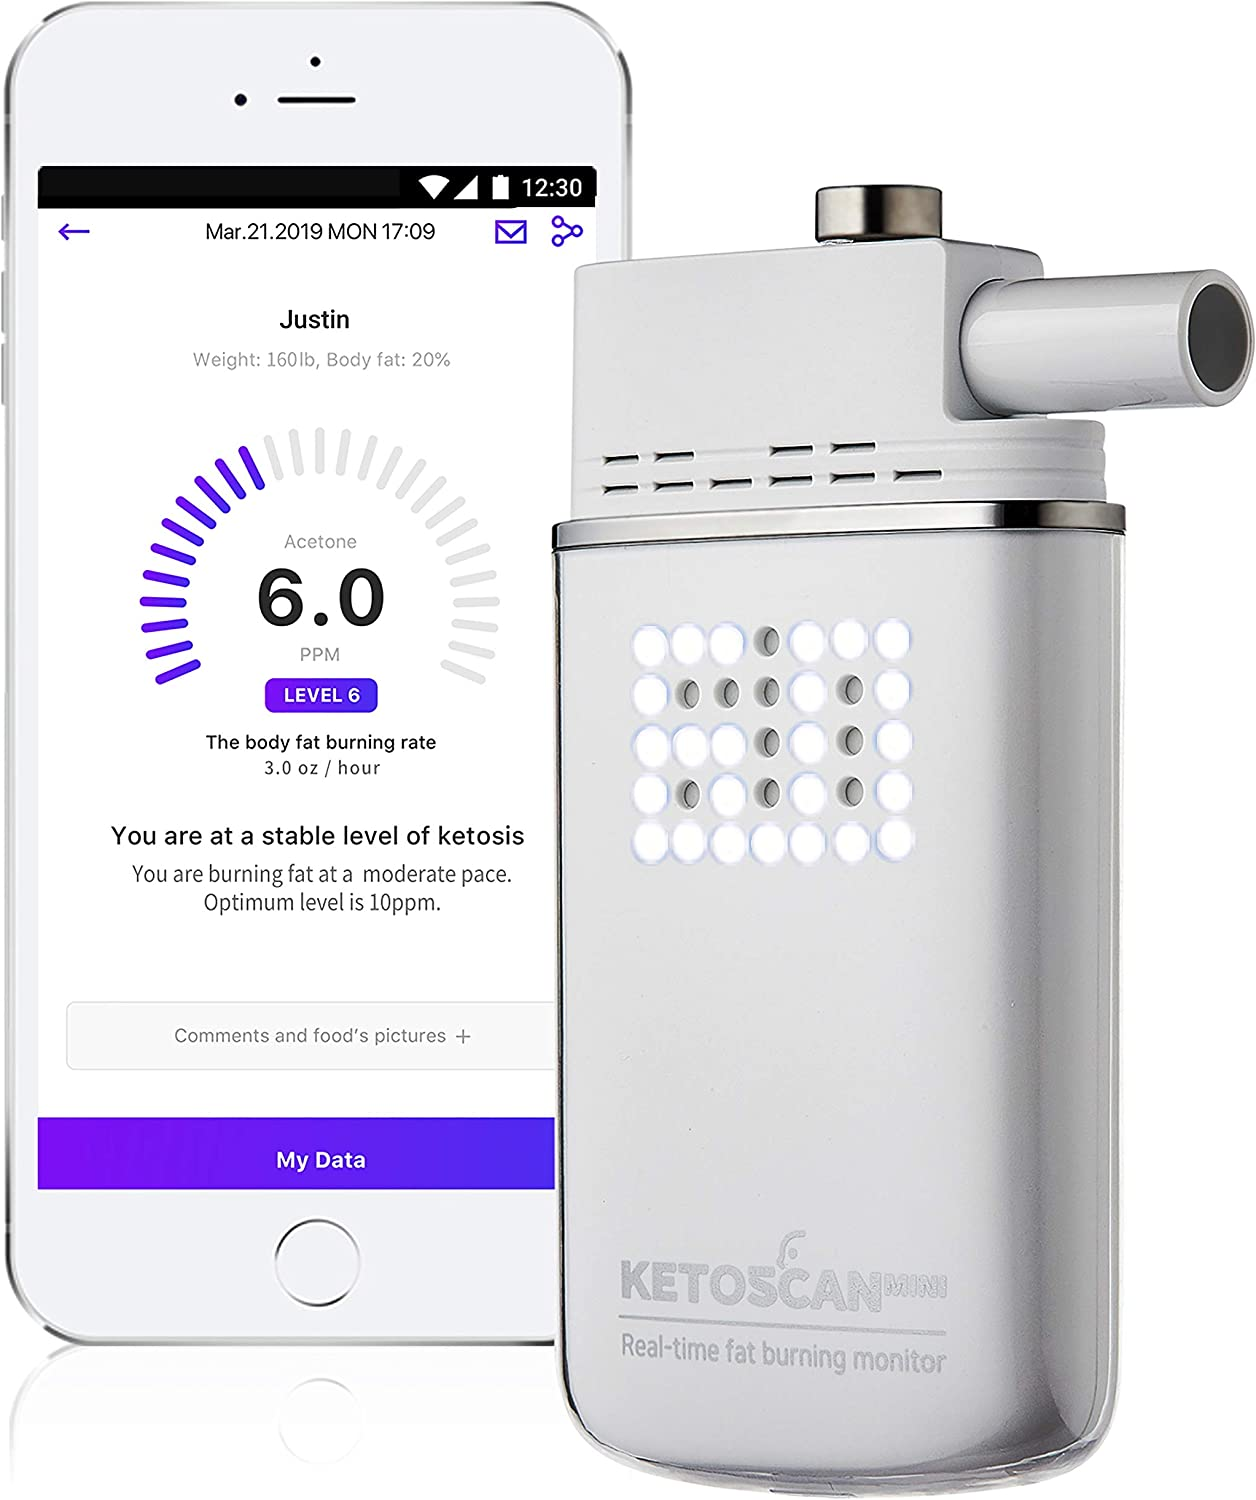 [Upgraded V2] KETOSCAN Mini Breath Ketone Meter   Monitor Your Fat Metabolism or Level of Ketosis on Low carb, Ketogenic, Paleo Diet or Any Nutrition and Fitness Program